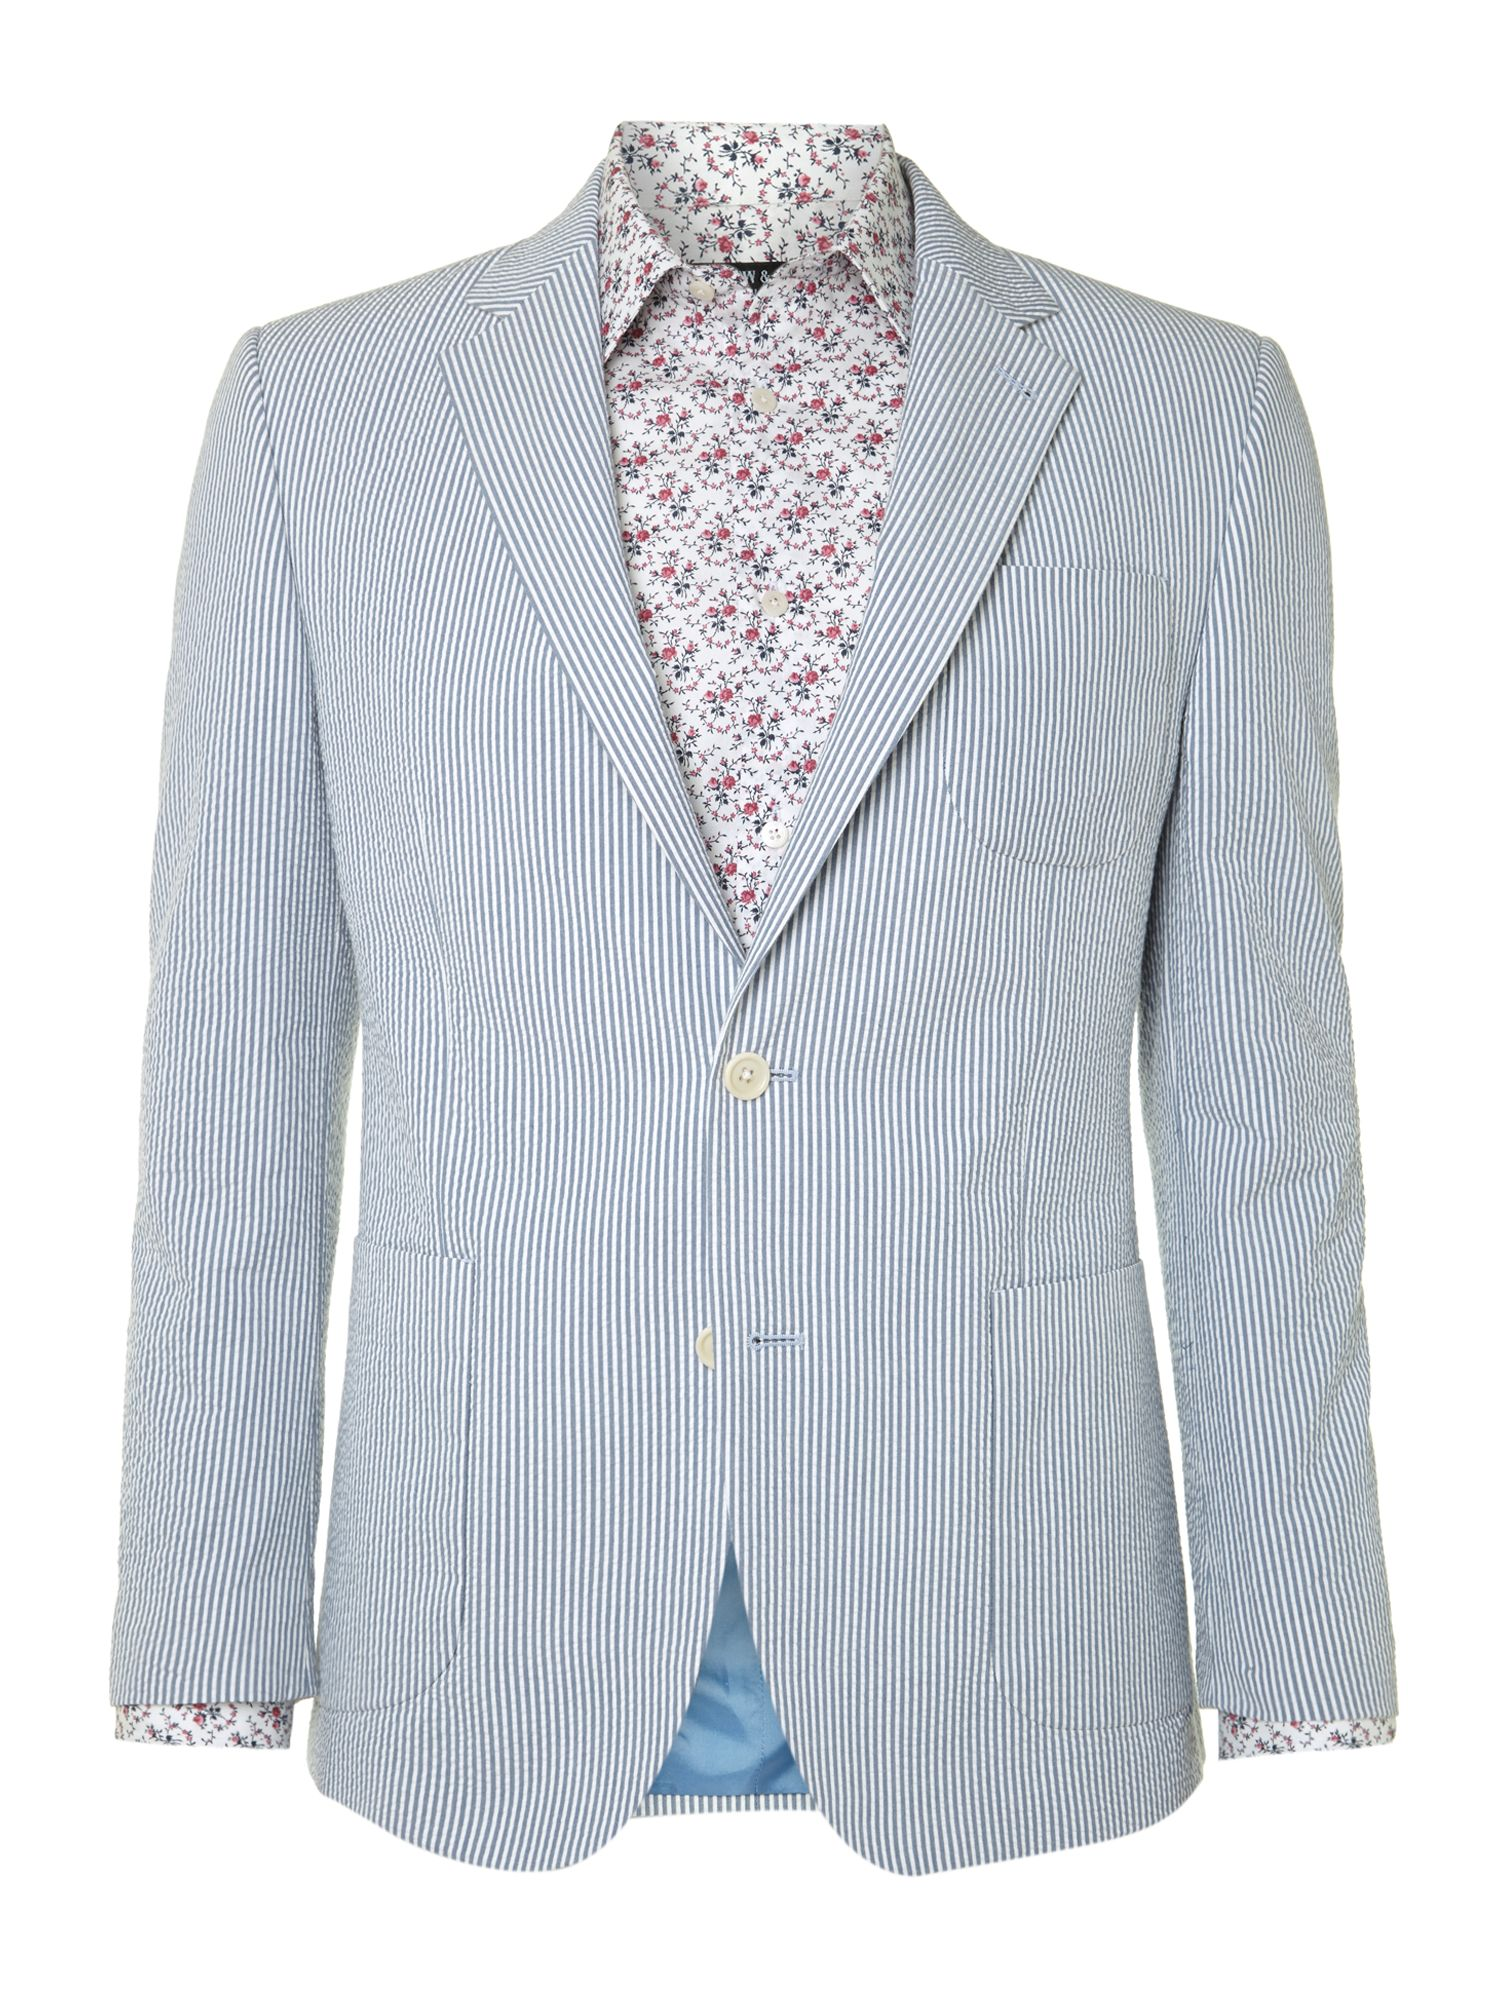 Boltons seersucker cotton blazer